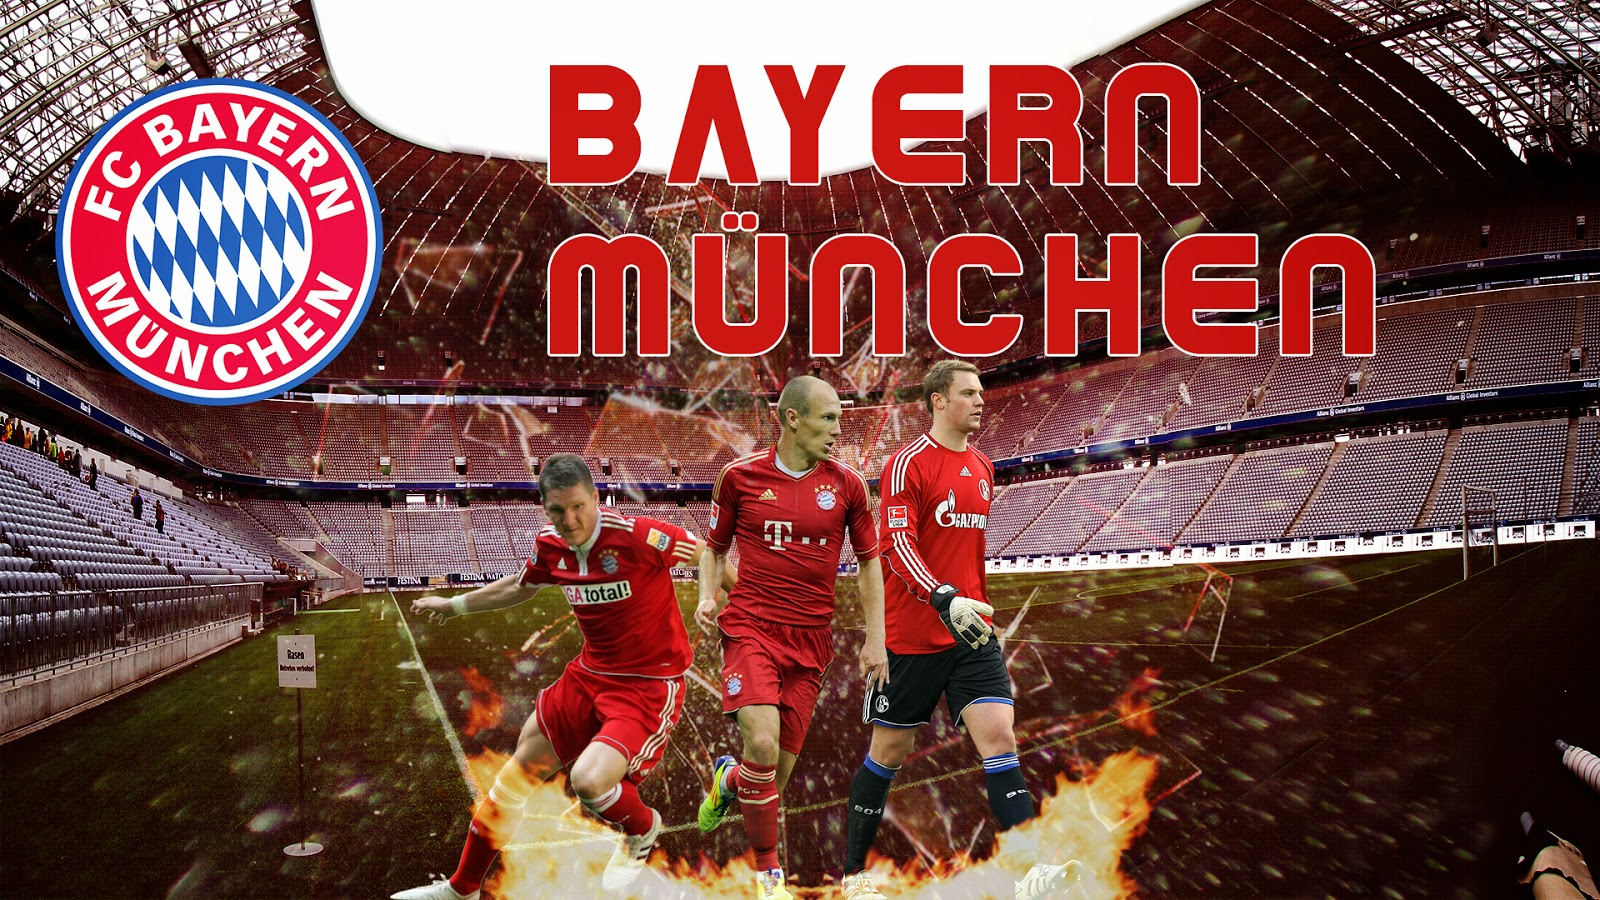 bayern munchen football club wallpaper